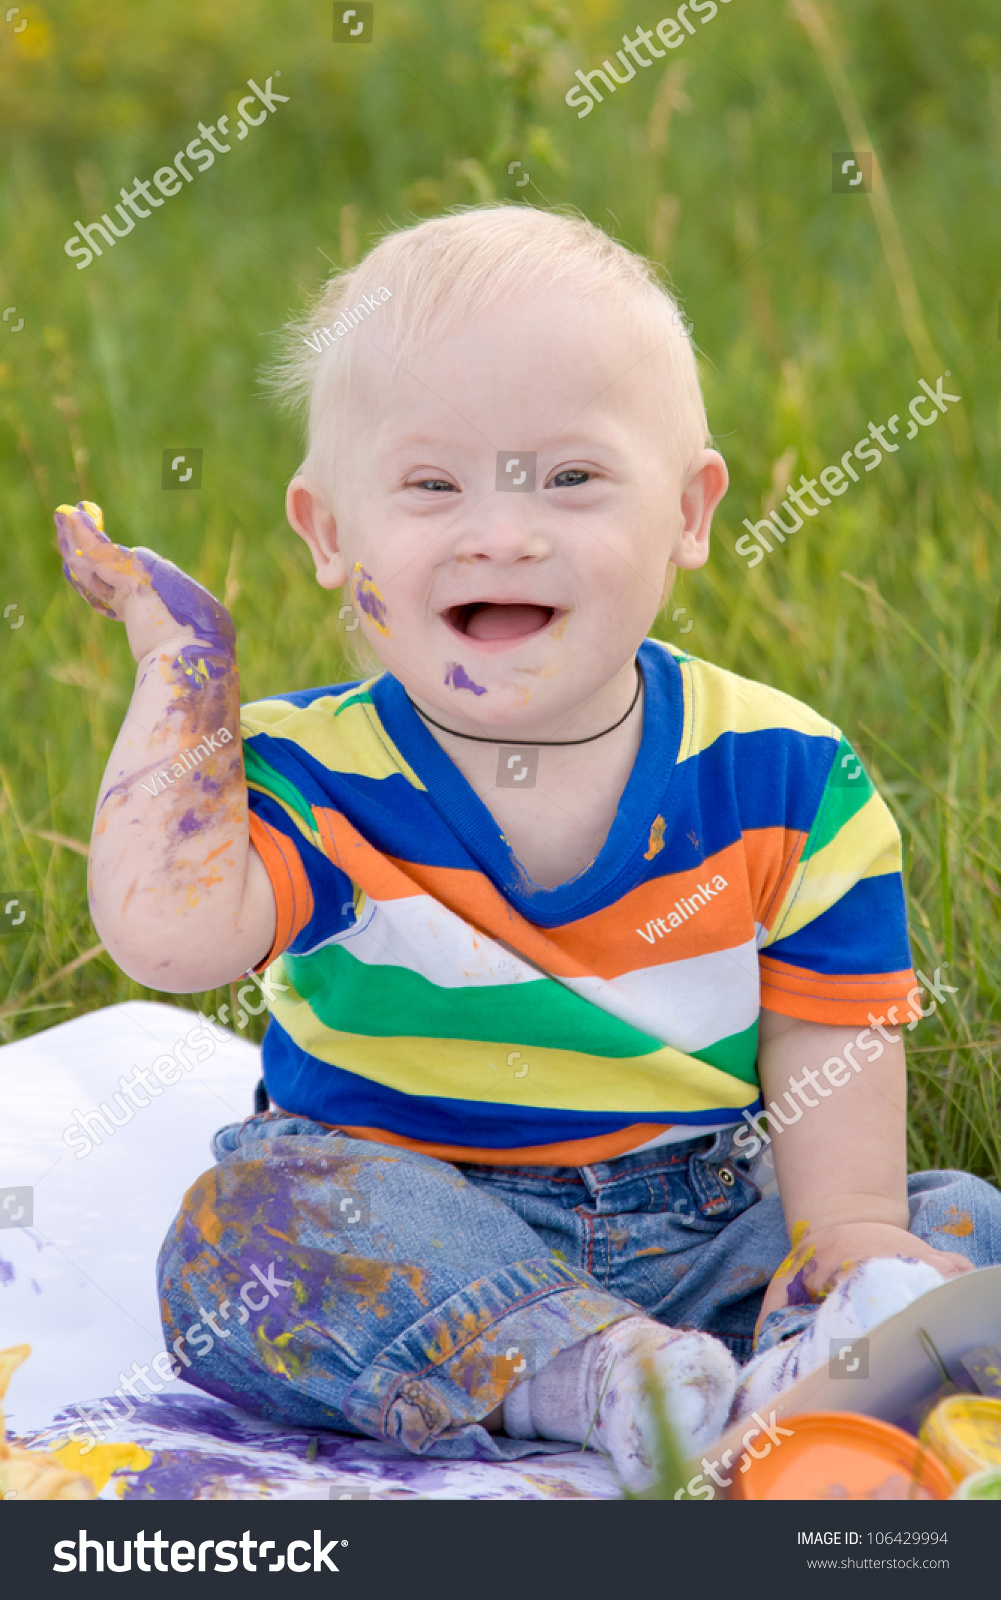 Little Baby Boy With Down Syndrome Painting Finger Paints ...